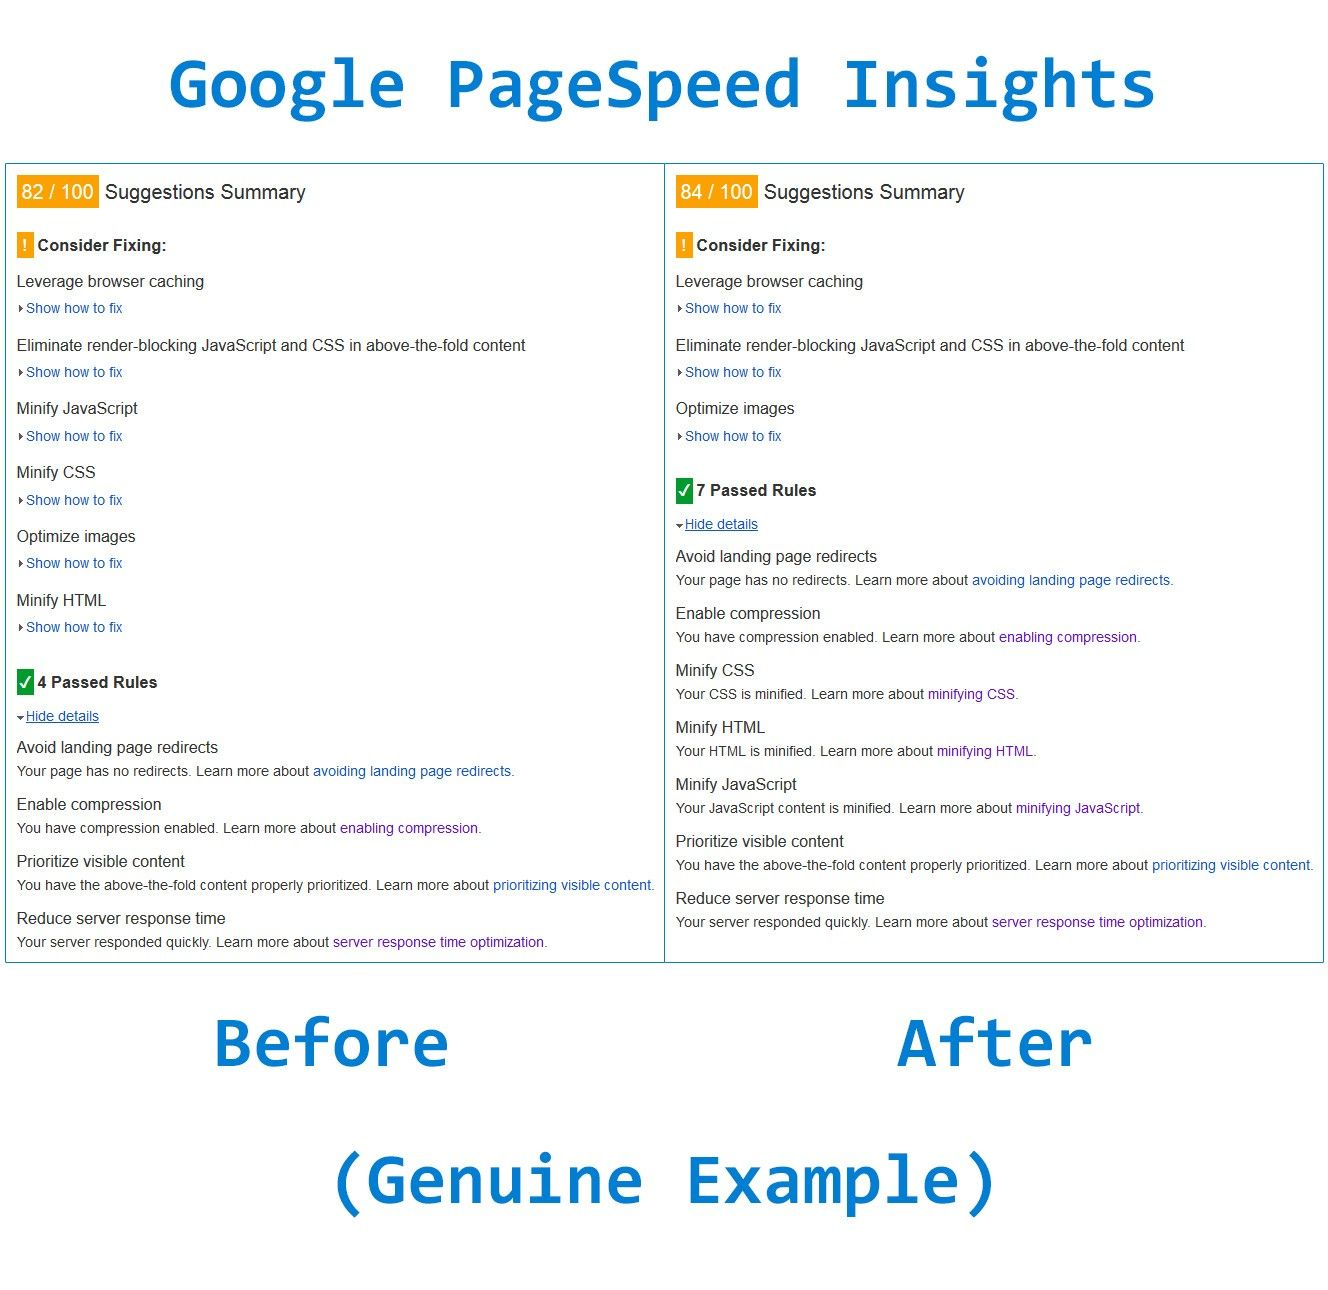 Screenshot showing before-after for google pagespeed insights